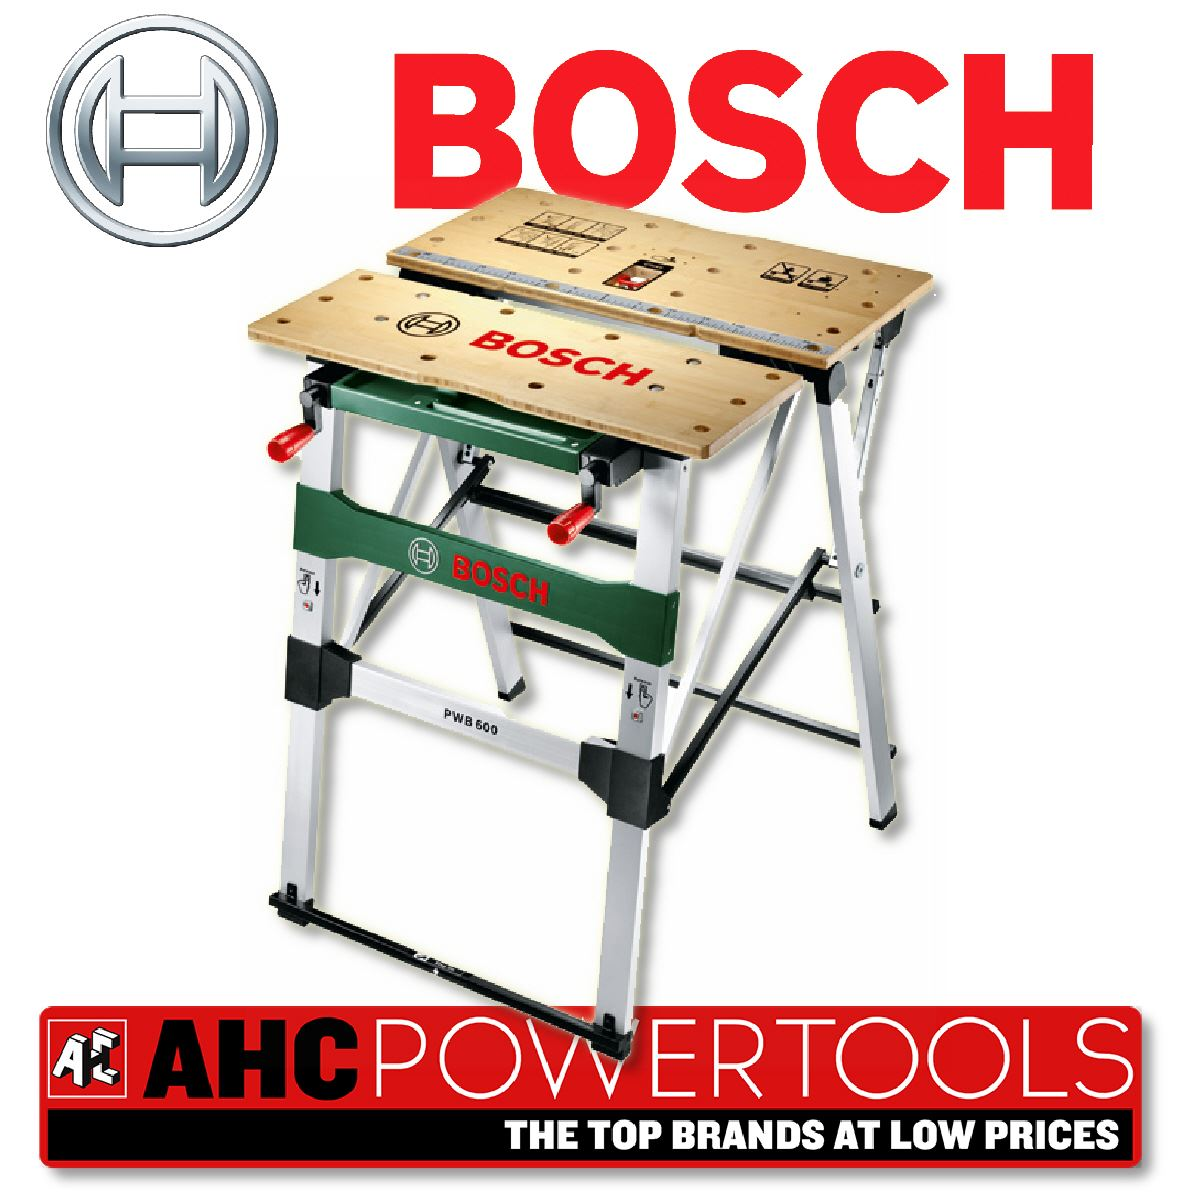 Bosch workmate pwb 600